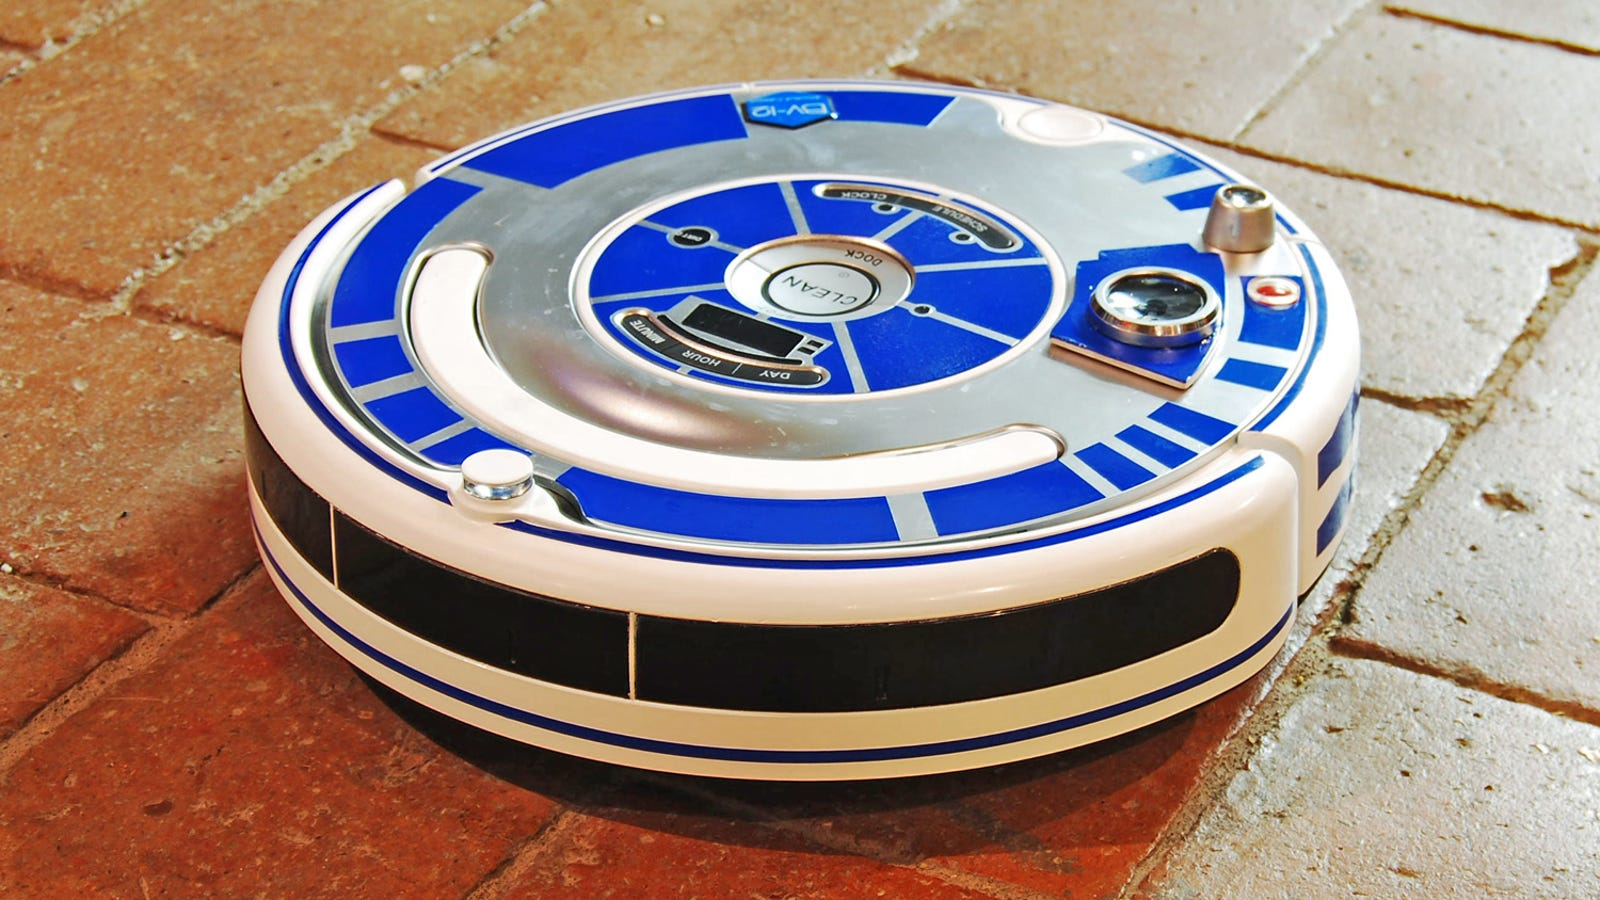 Turn Your Roomba Into The Star Wars Droid You Already